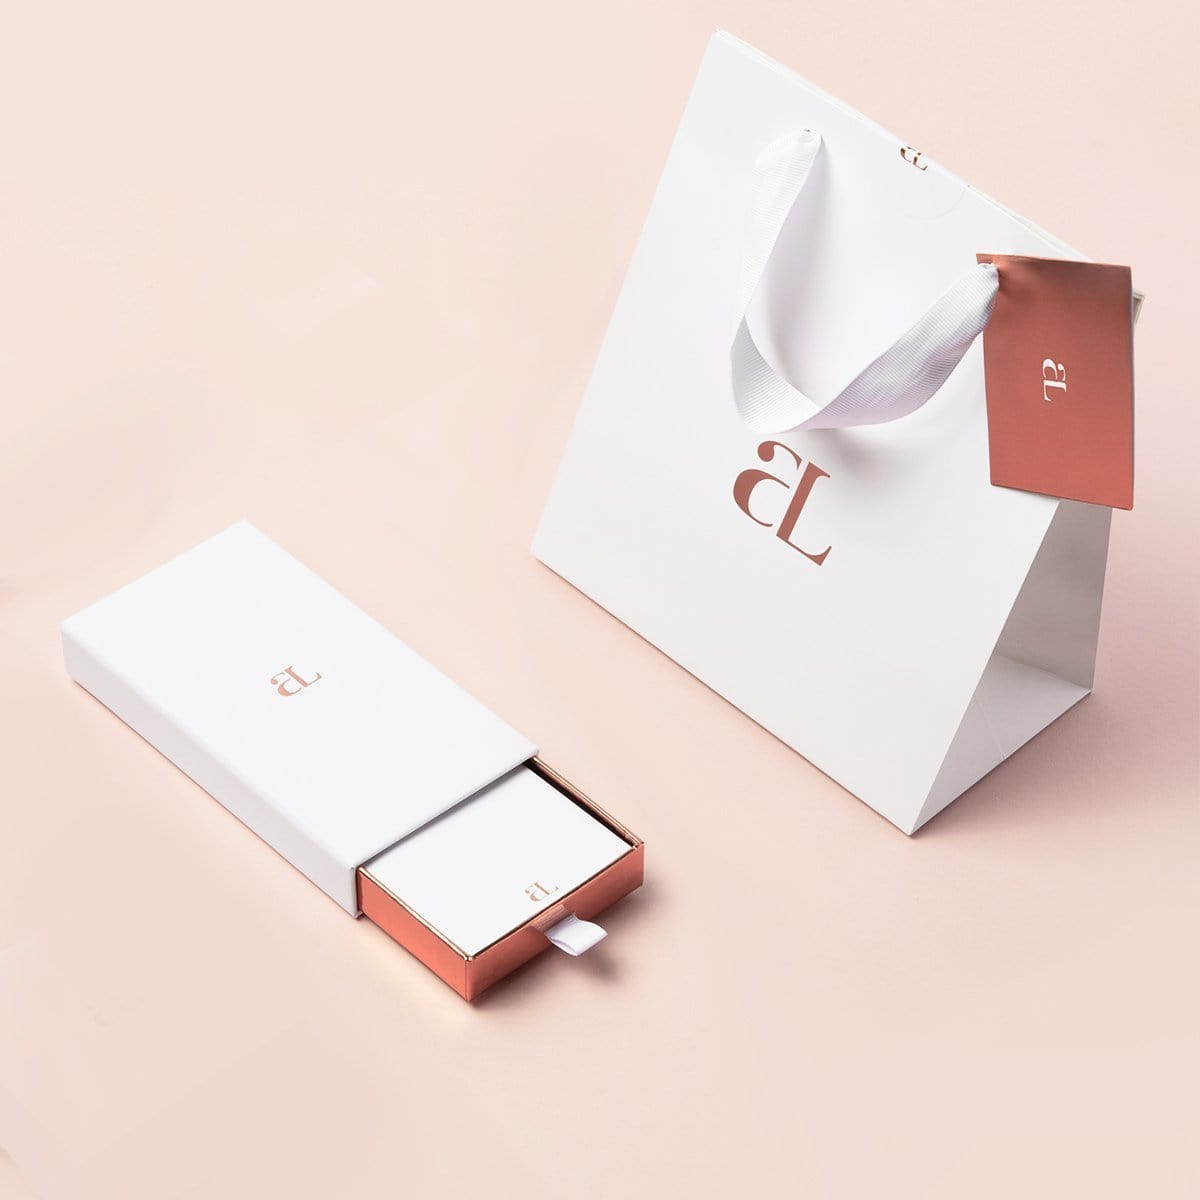 The Rose Chain Kensington 40 knot Gift Set (Rose/Rose)